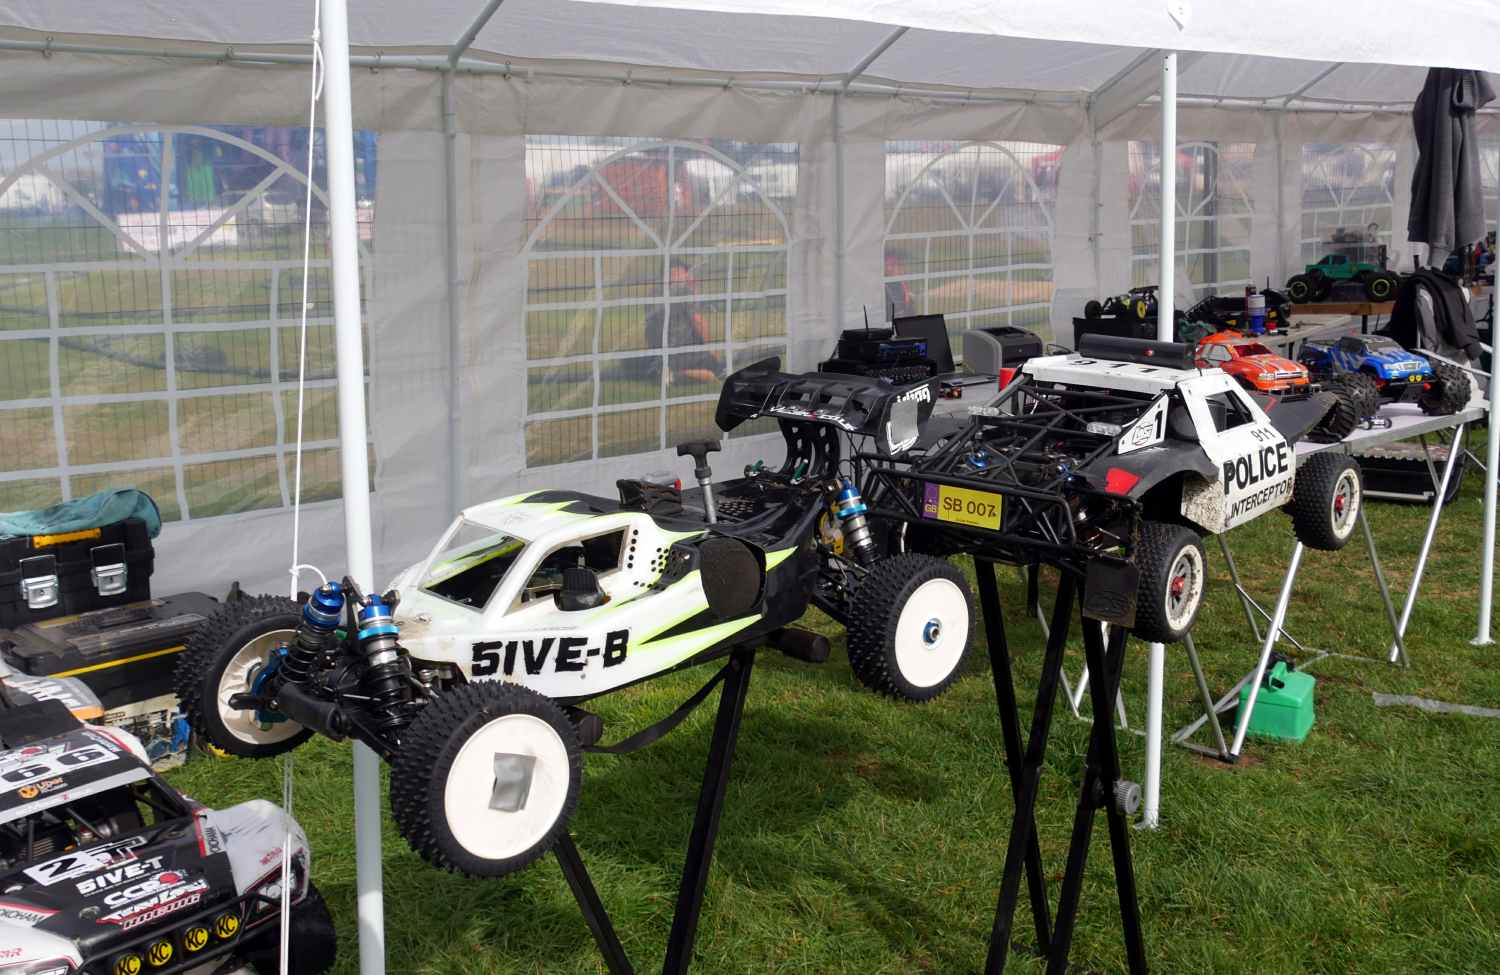 Various model petrol driven racing cars